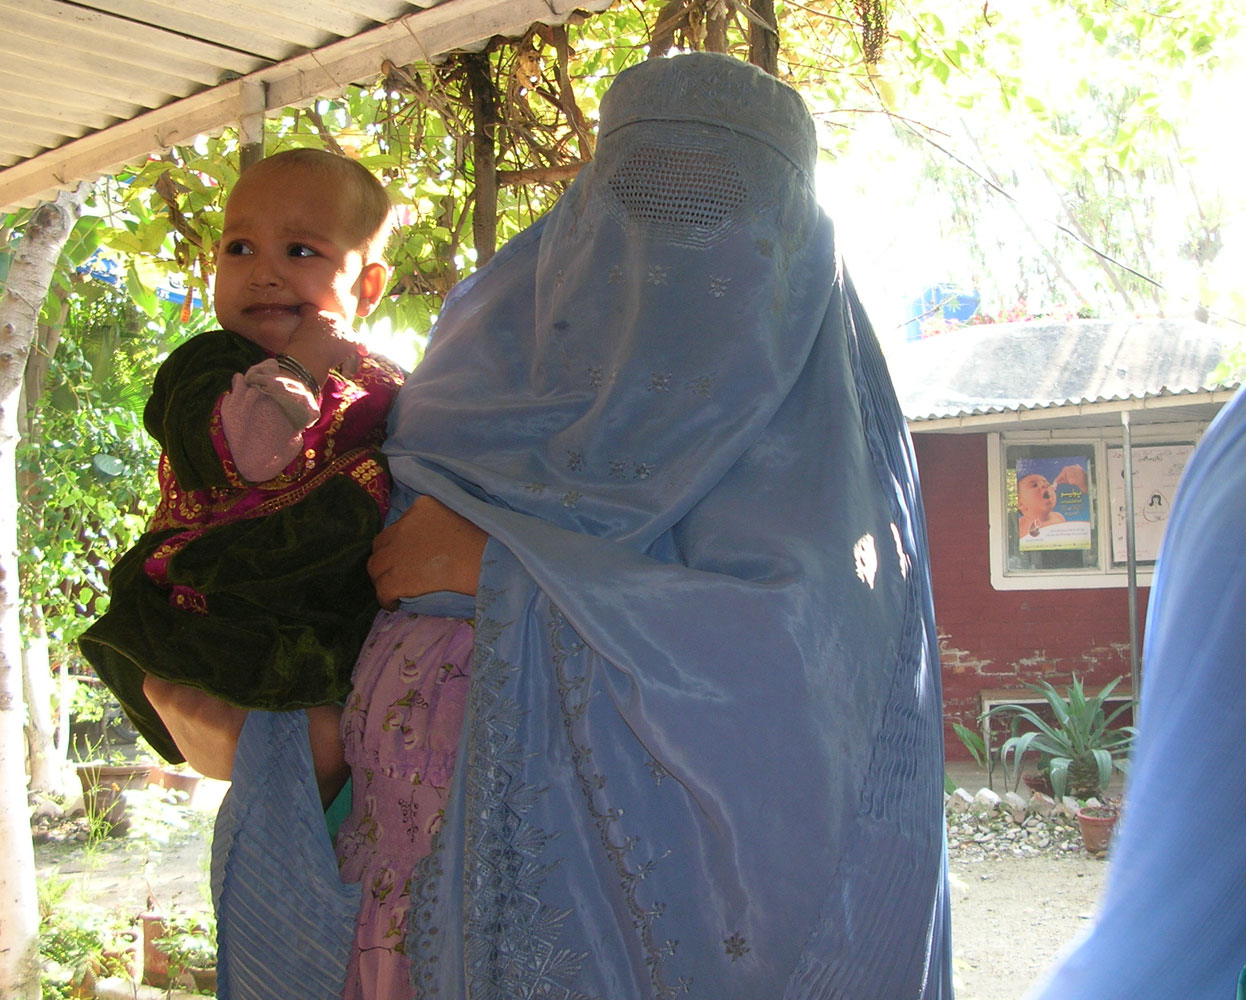 Afghan mother and baby